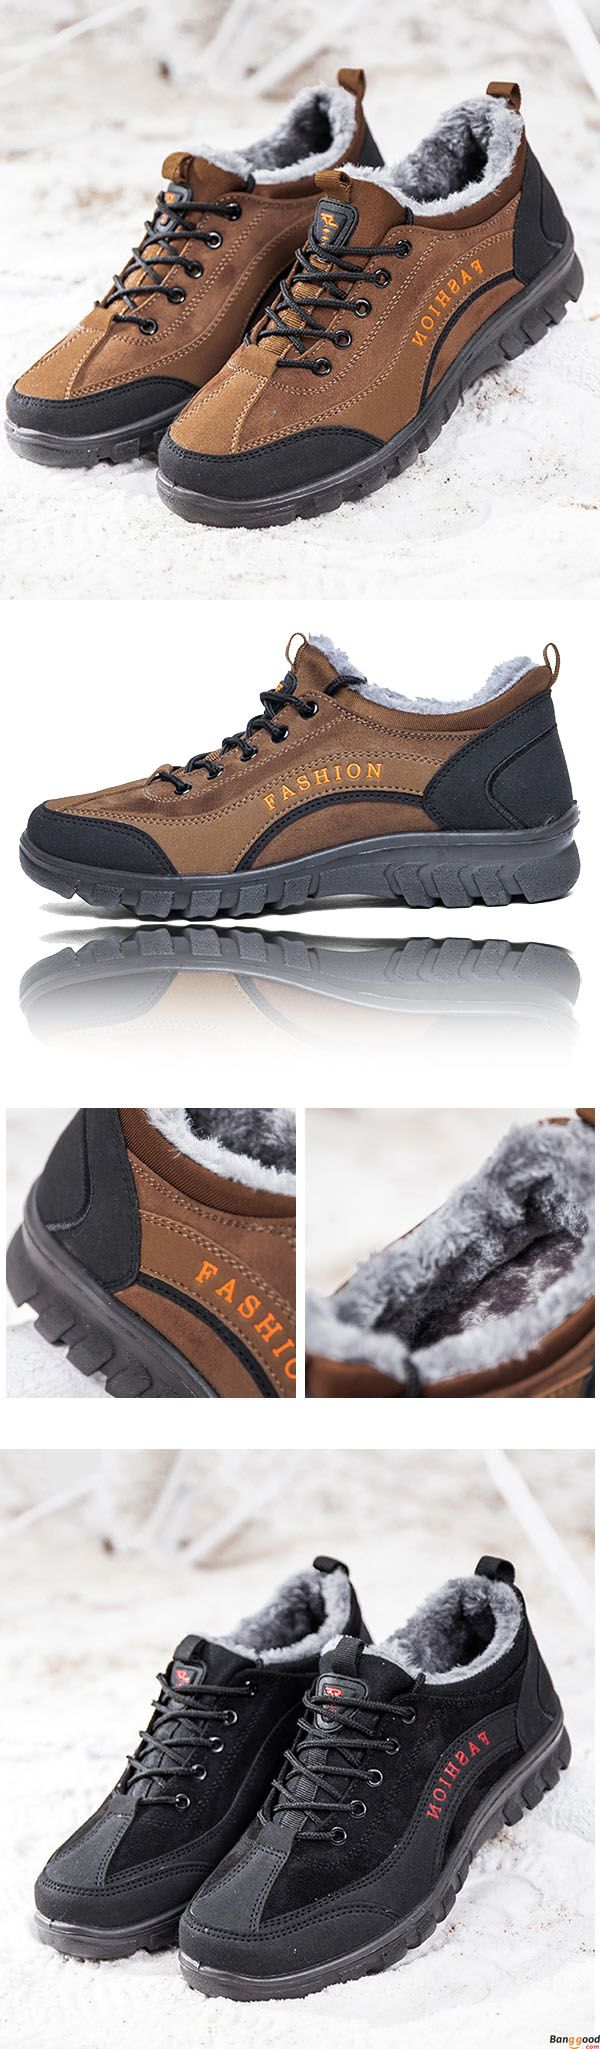 Comfy Men Casual Soft Sole Warm Fur Lining Suede Leather Sports Athetic Shoes. Fashion style for winter must have. Size: US6.5~US10. Shop at banggood with super affordable price.